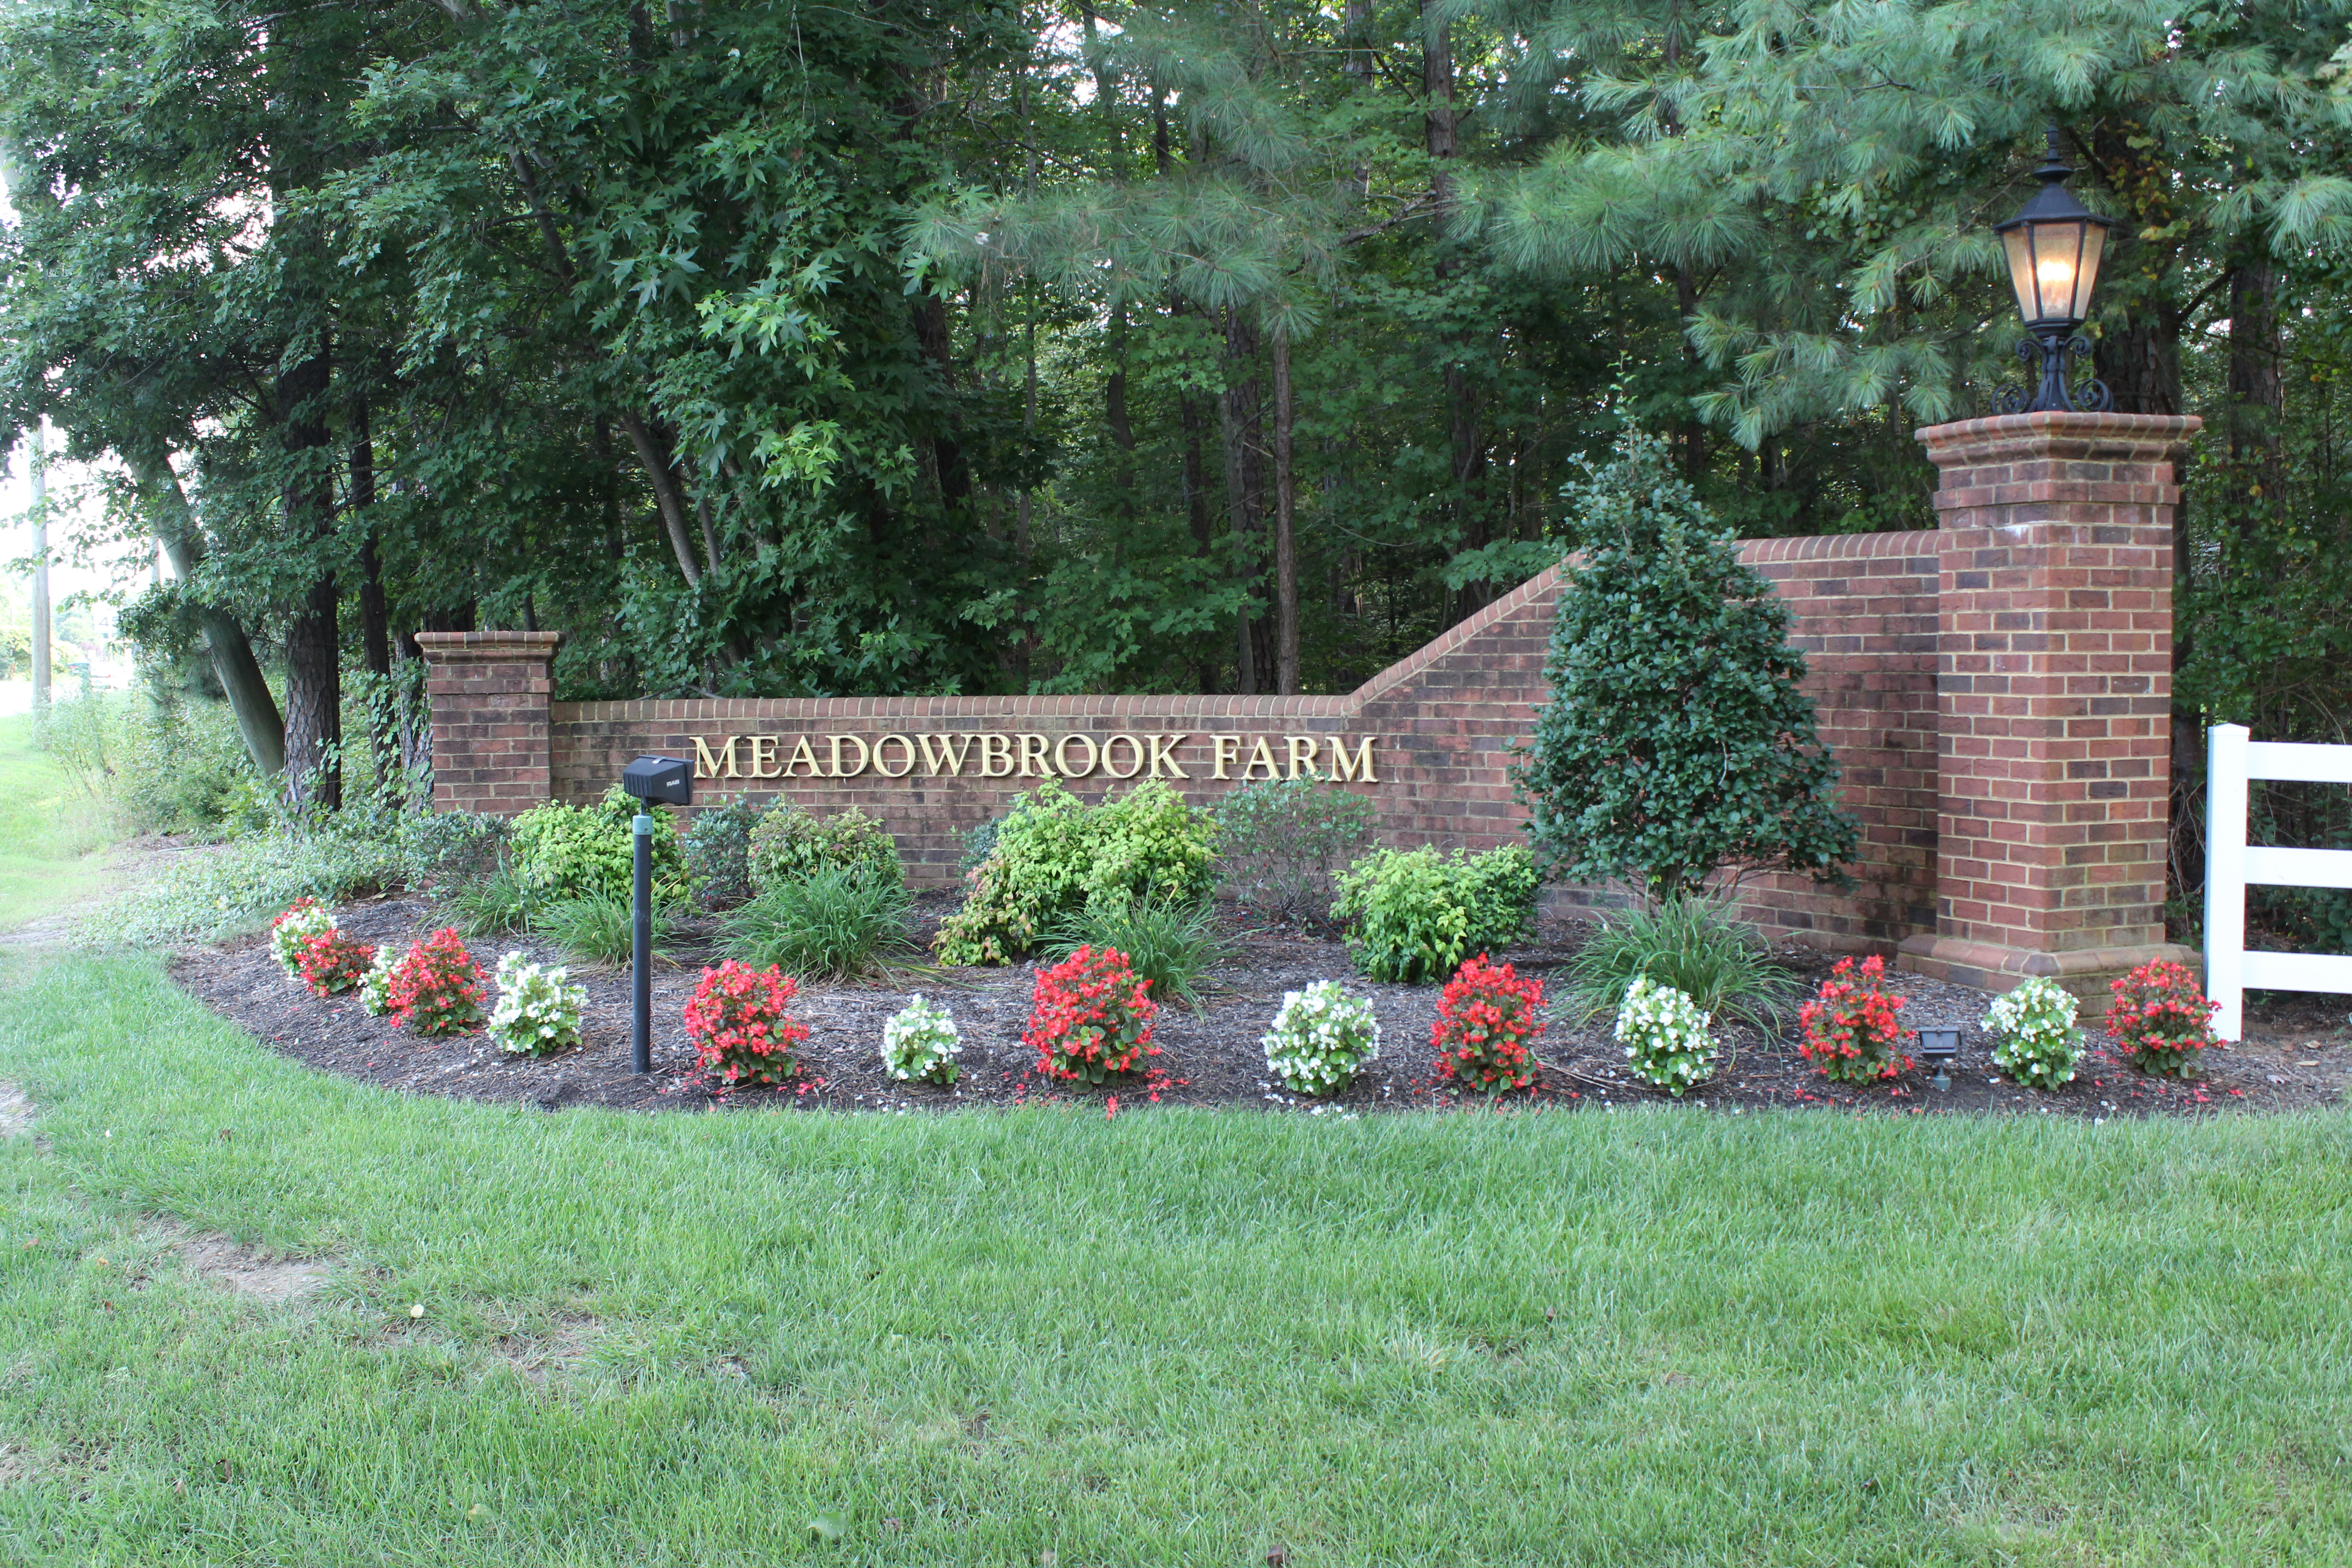 Meadowbrook farm welcome homeowner 39 s association for The meadowbrook